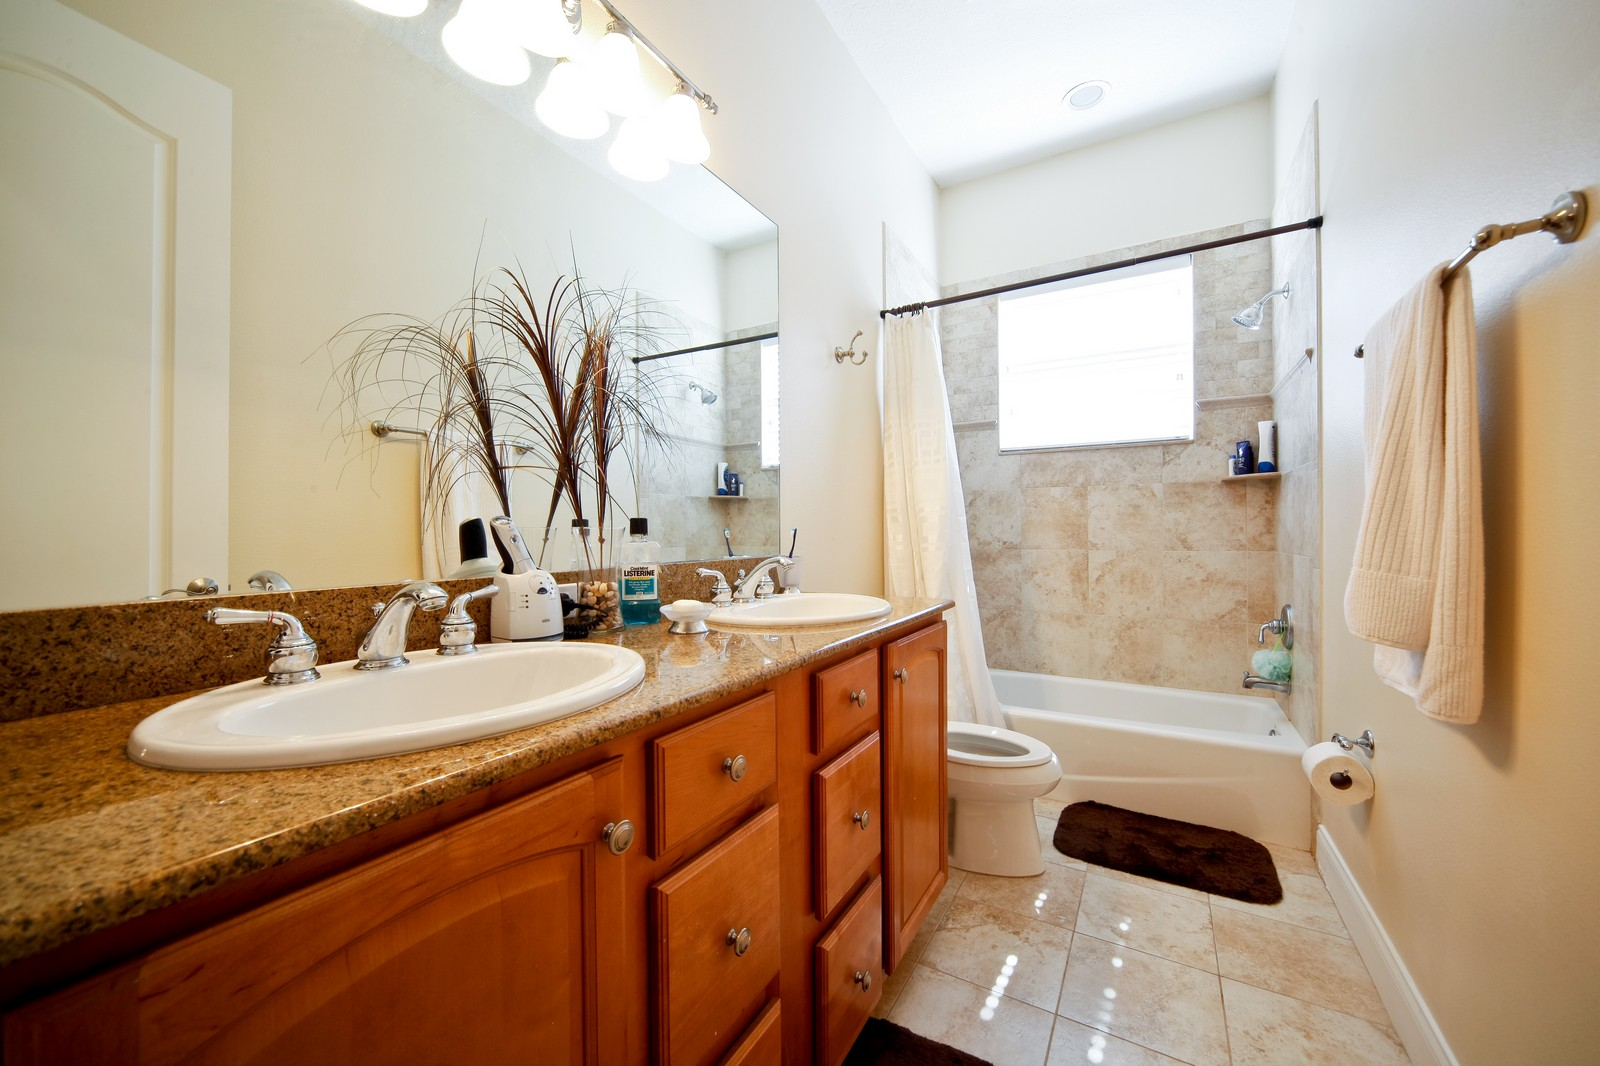 Real Estate Photography - 3812 El Prado Blvd, Tampa, FL, 33629 - 2nd Bathroom